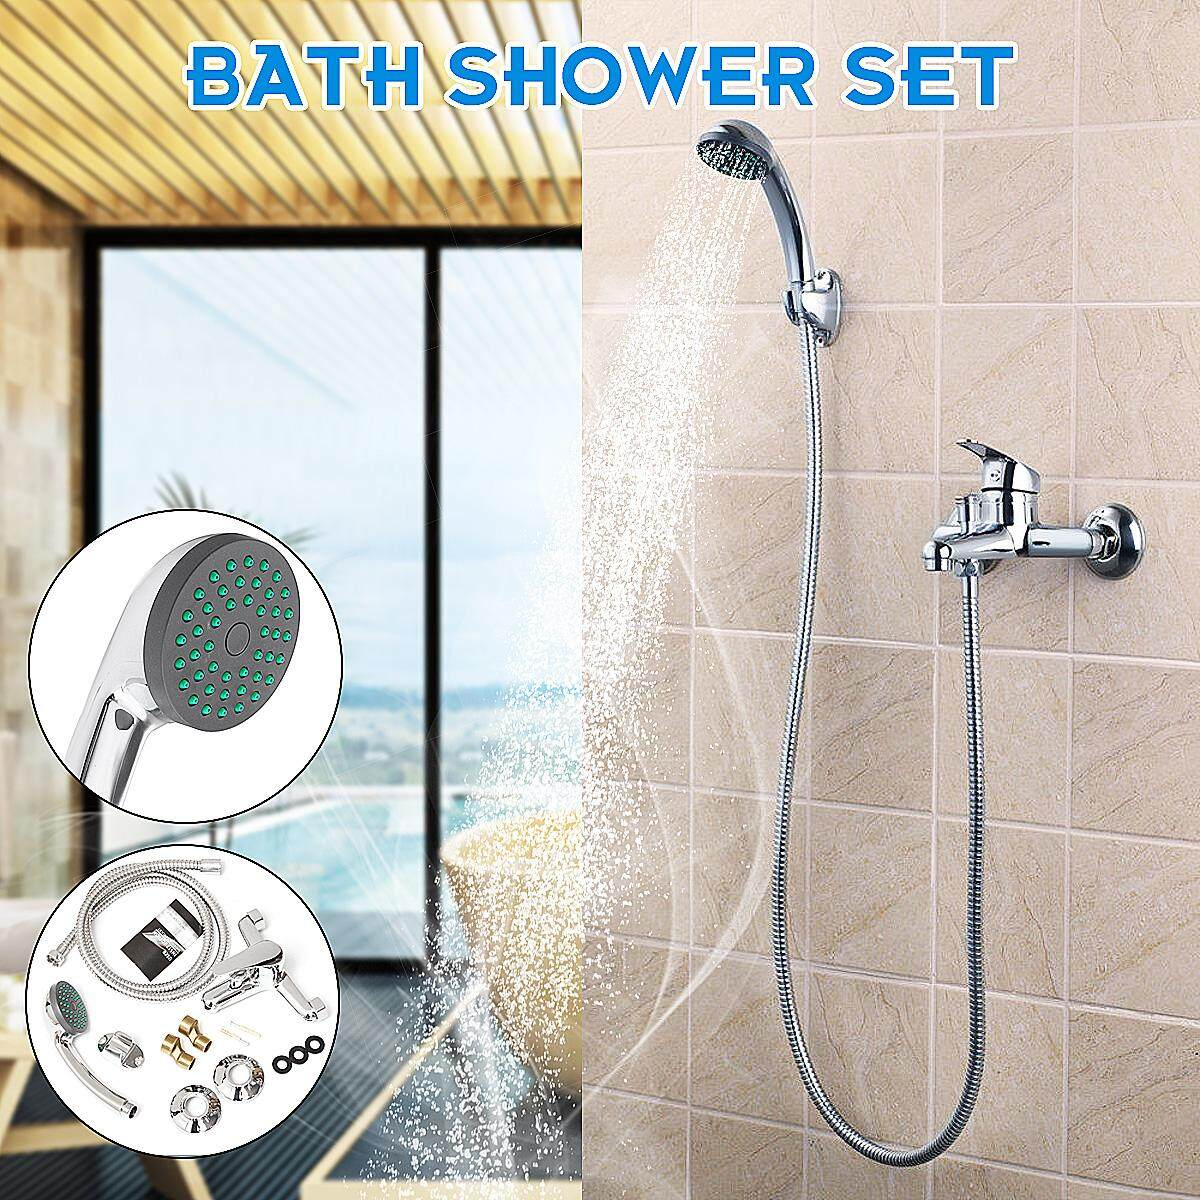 Chrome Wall Mounted Bathroom Bathtub Shower Faucet Set Mixer + Hand Sprayer Shower Head